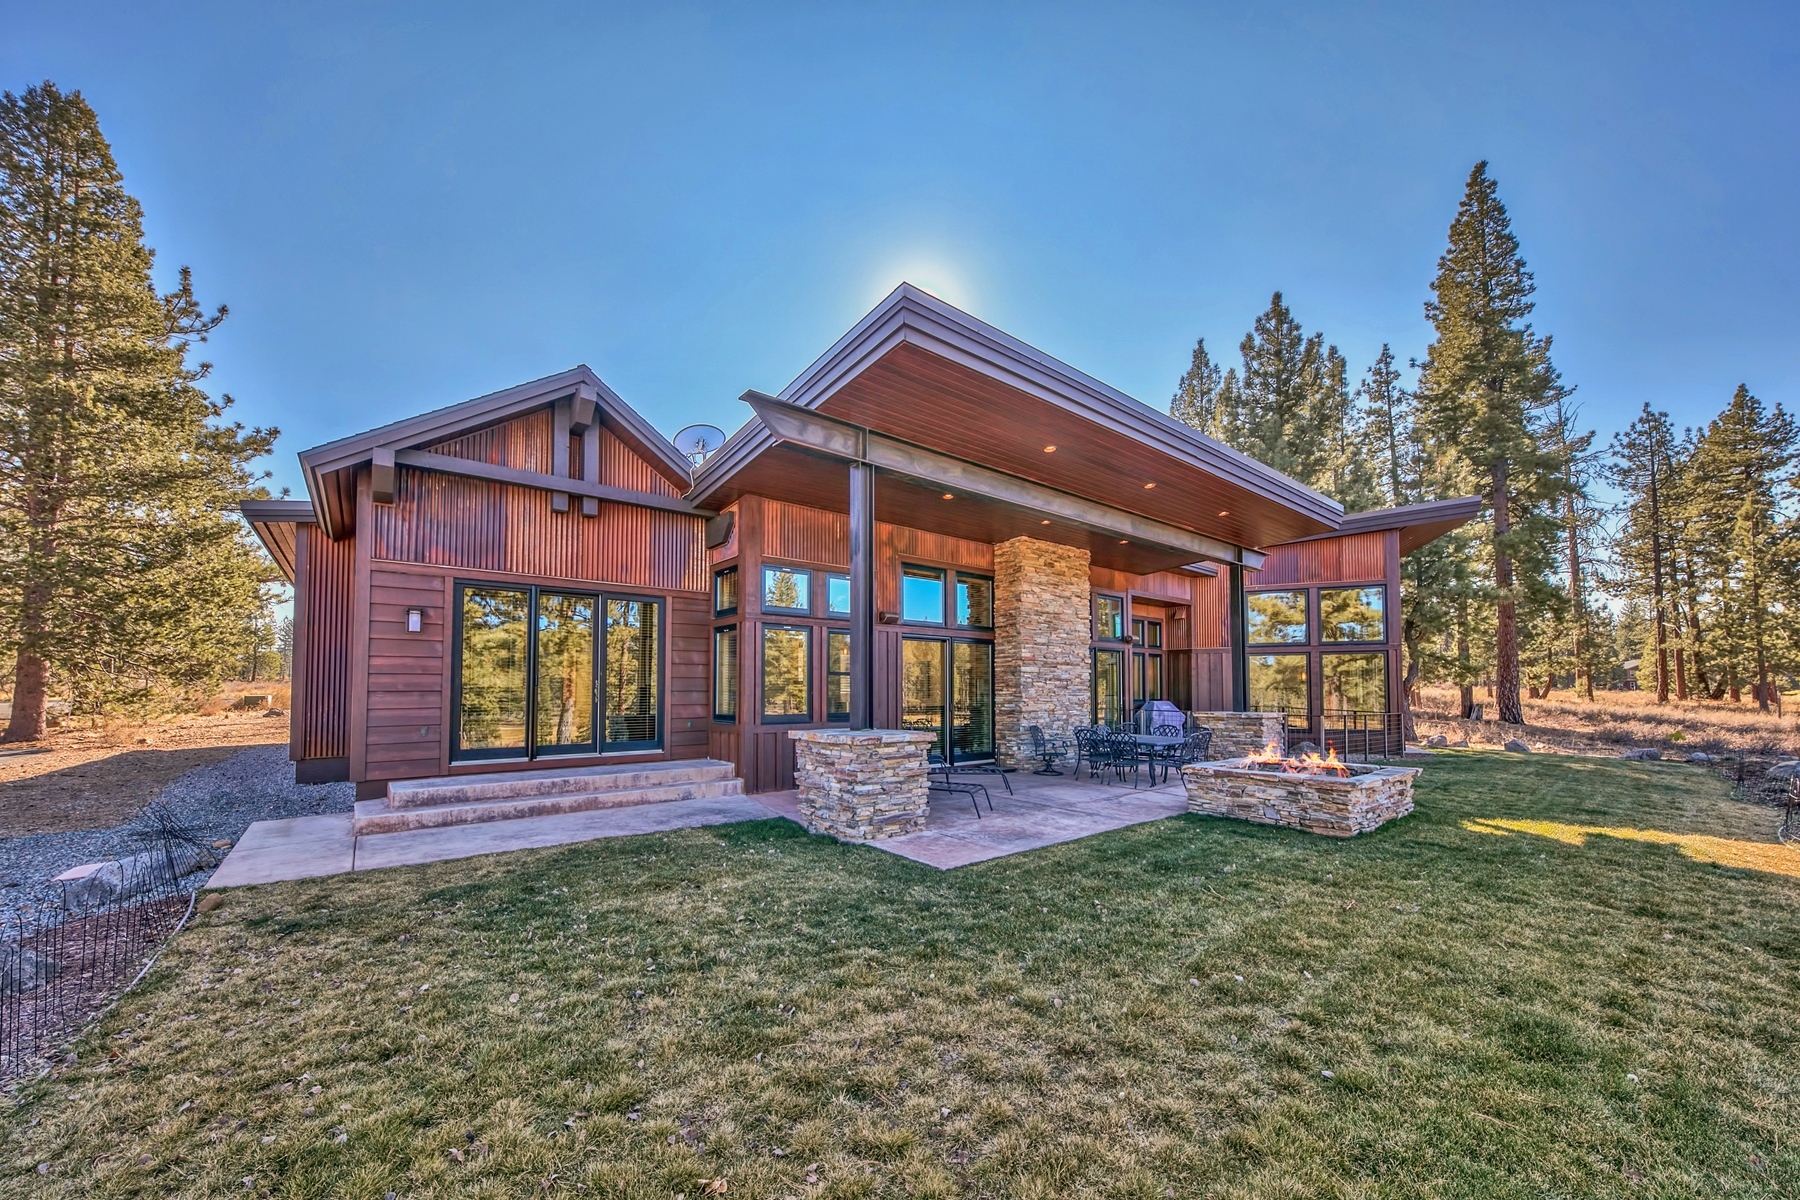 Additional photo for property listing at 11667 Henness Road, Truckee Ca 96161 11667 Henness Road Truckee, California 96161 United States